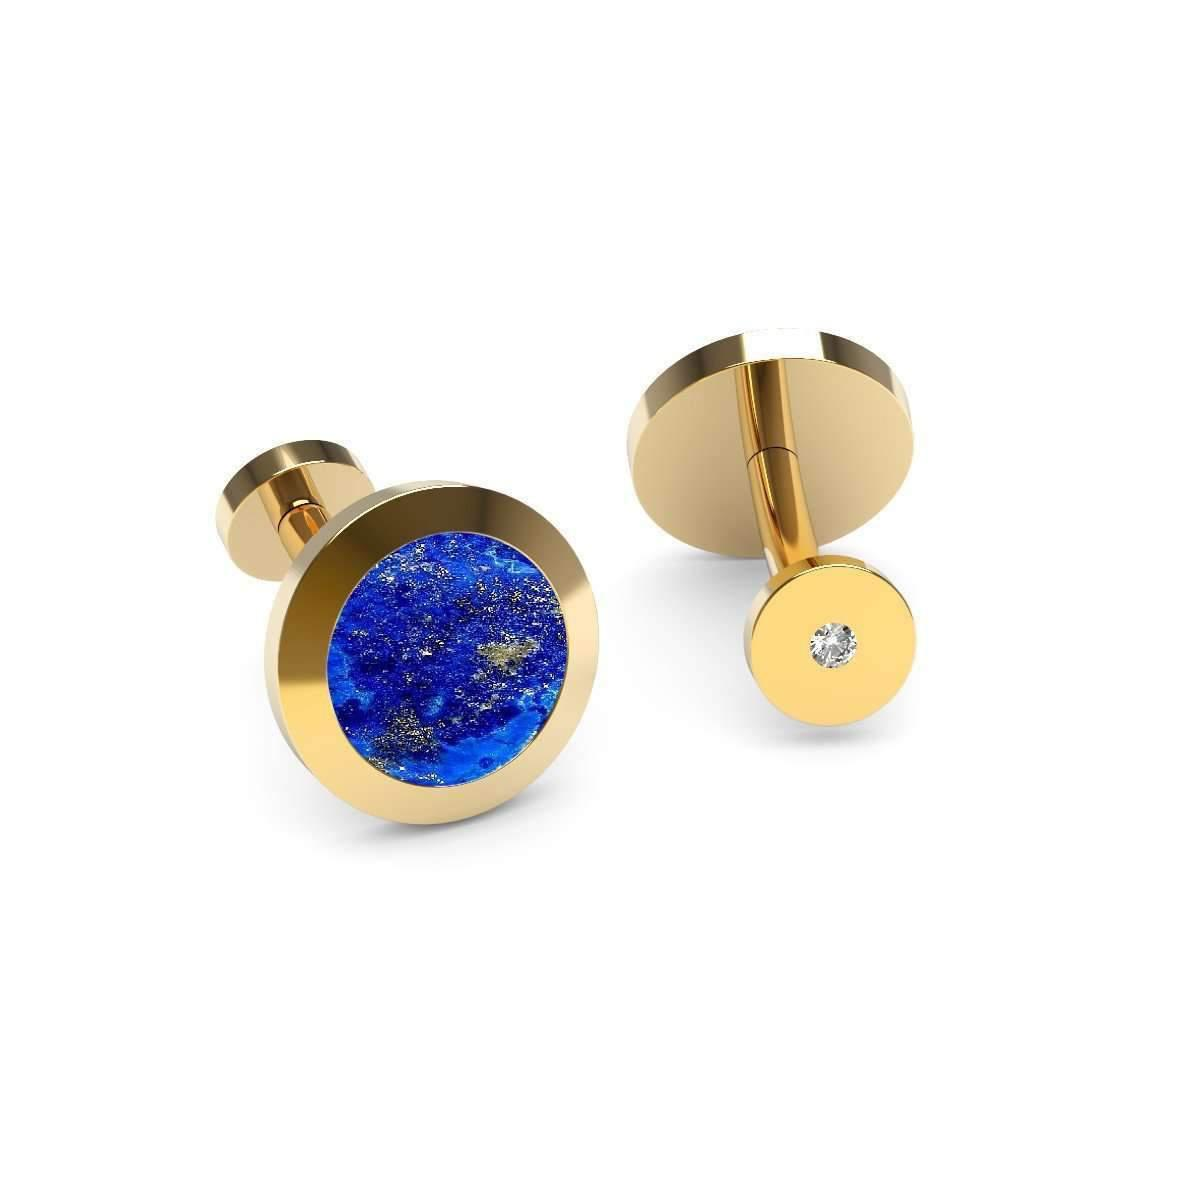 Syna 18kt 925 Yellow Diamonds and Black Onyx Cufflinks nD2N7yB3